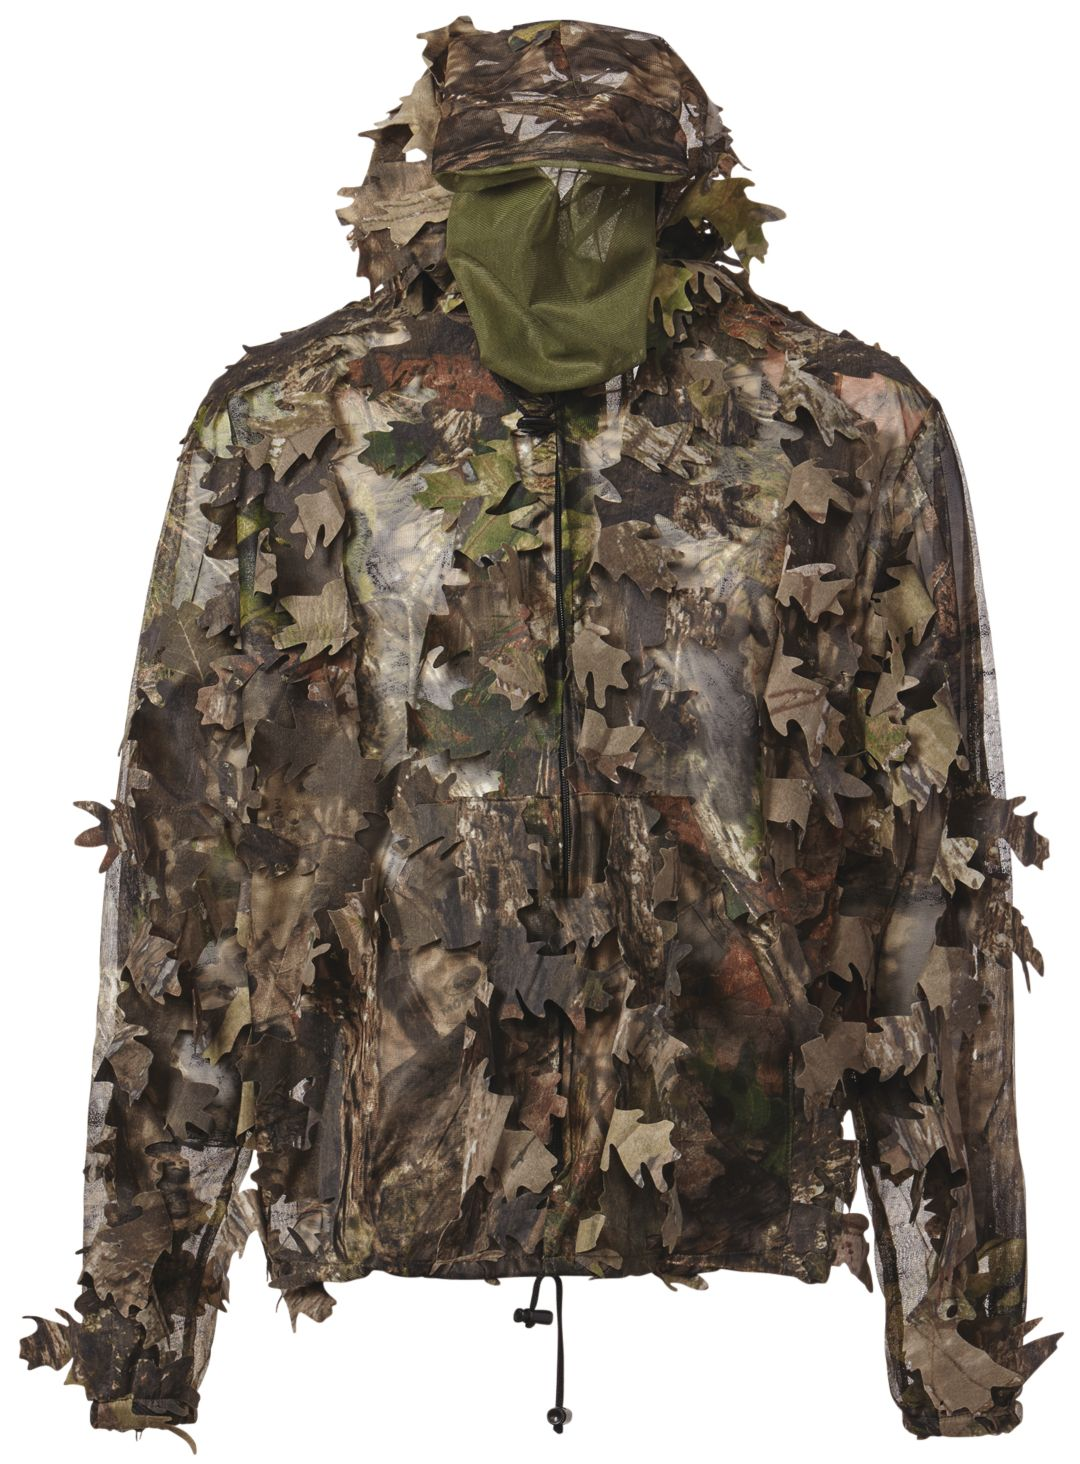 40ff0b097c46a Field & Stream Men's Leafy Hunting Suit | Field & Stream